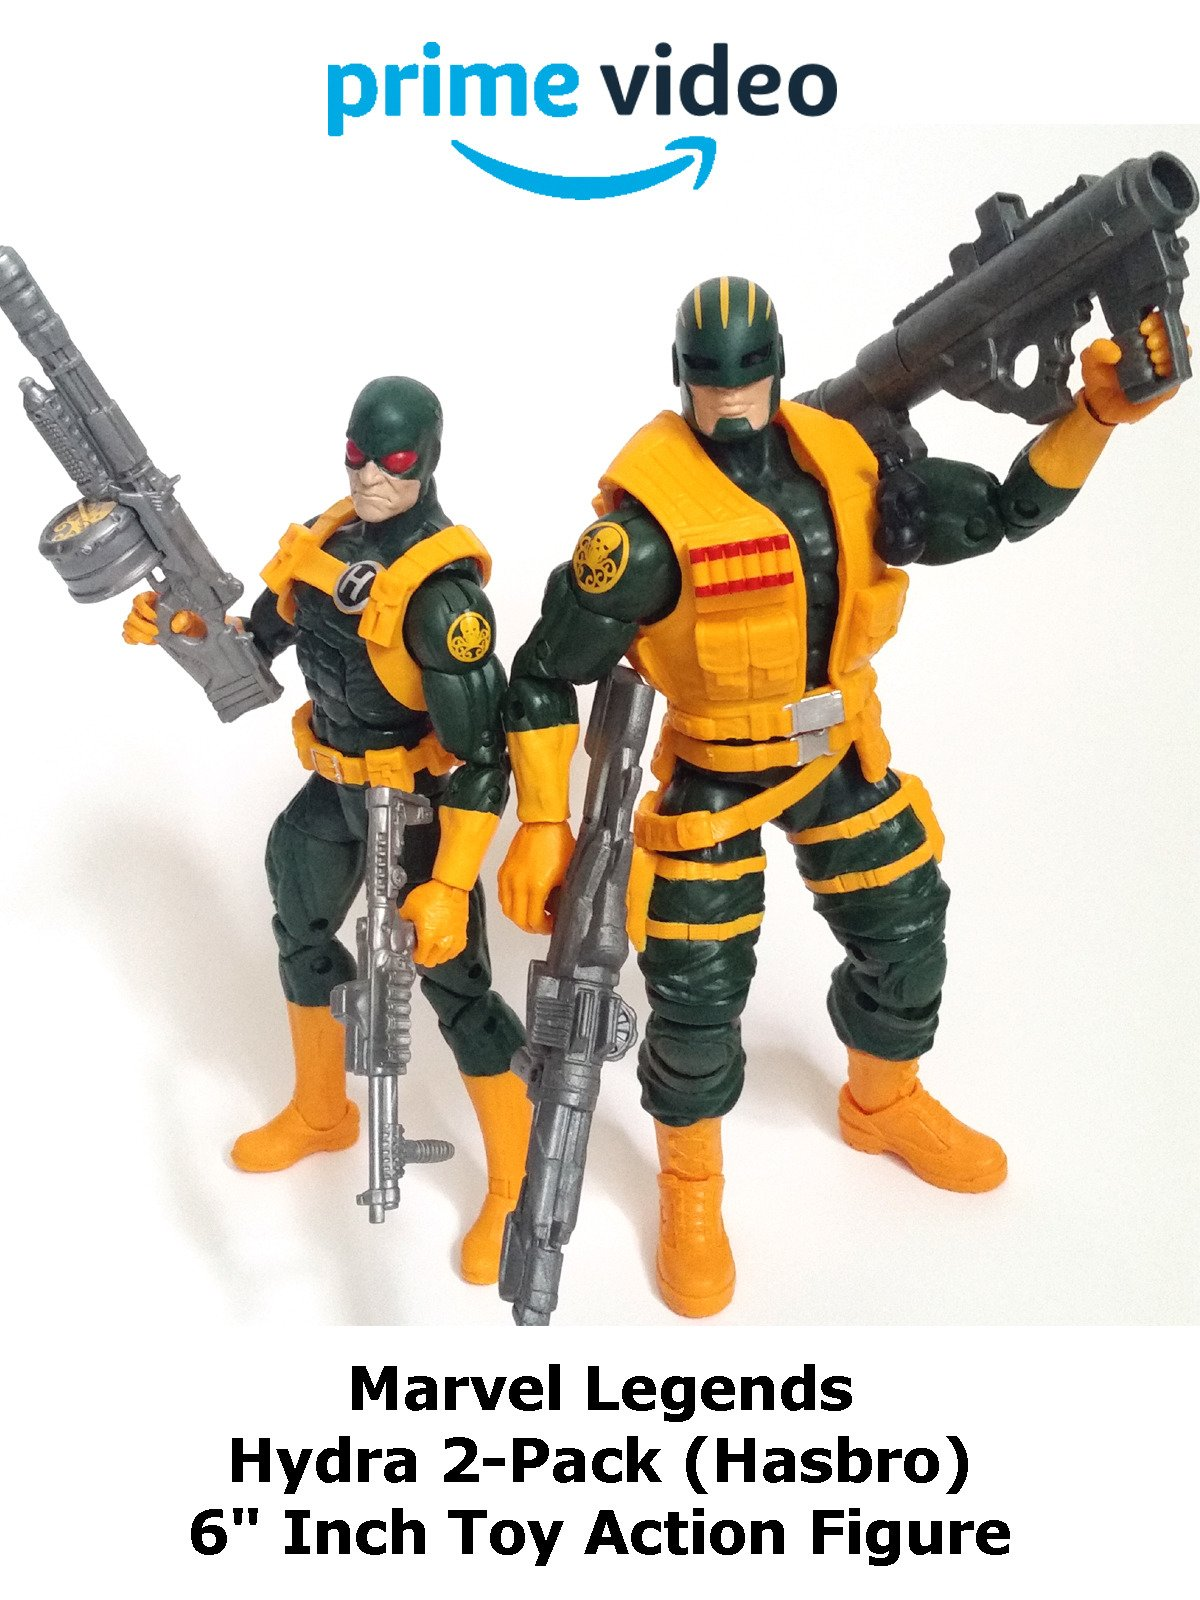 "Review: Marvel Legends Hydra 2-Pack (Hasbro) 6"" Inch Toy Action Figure"